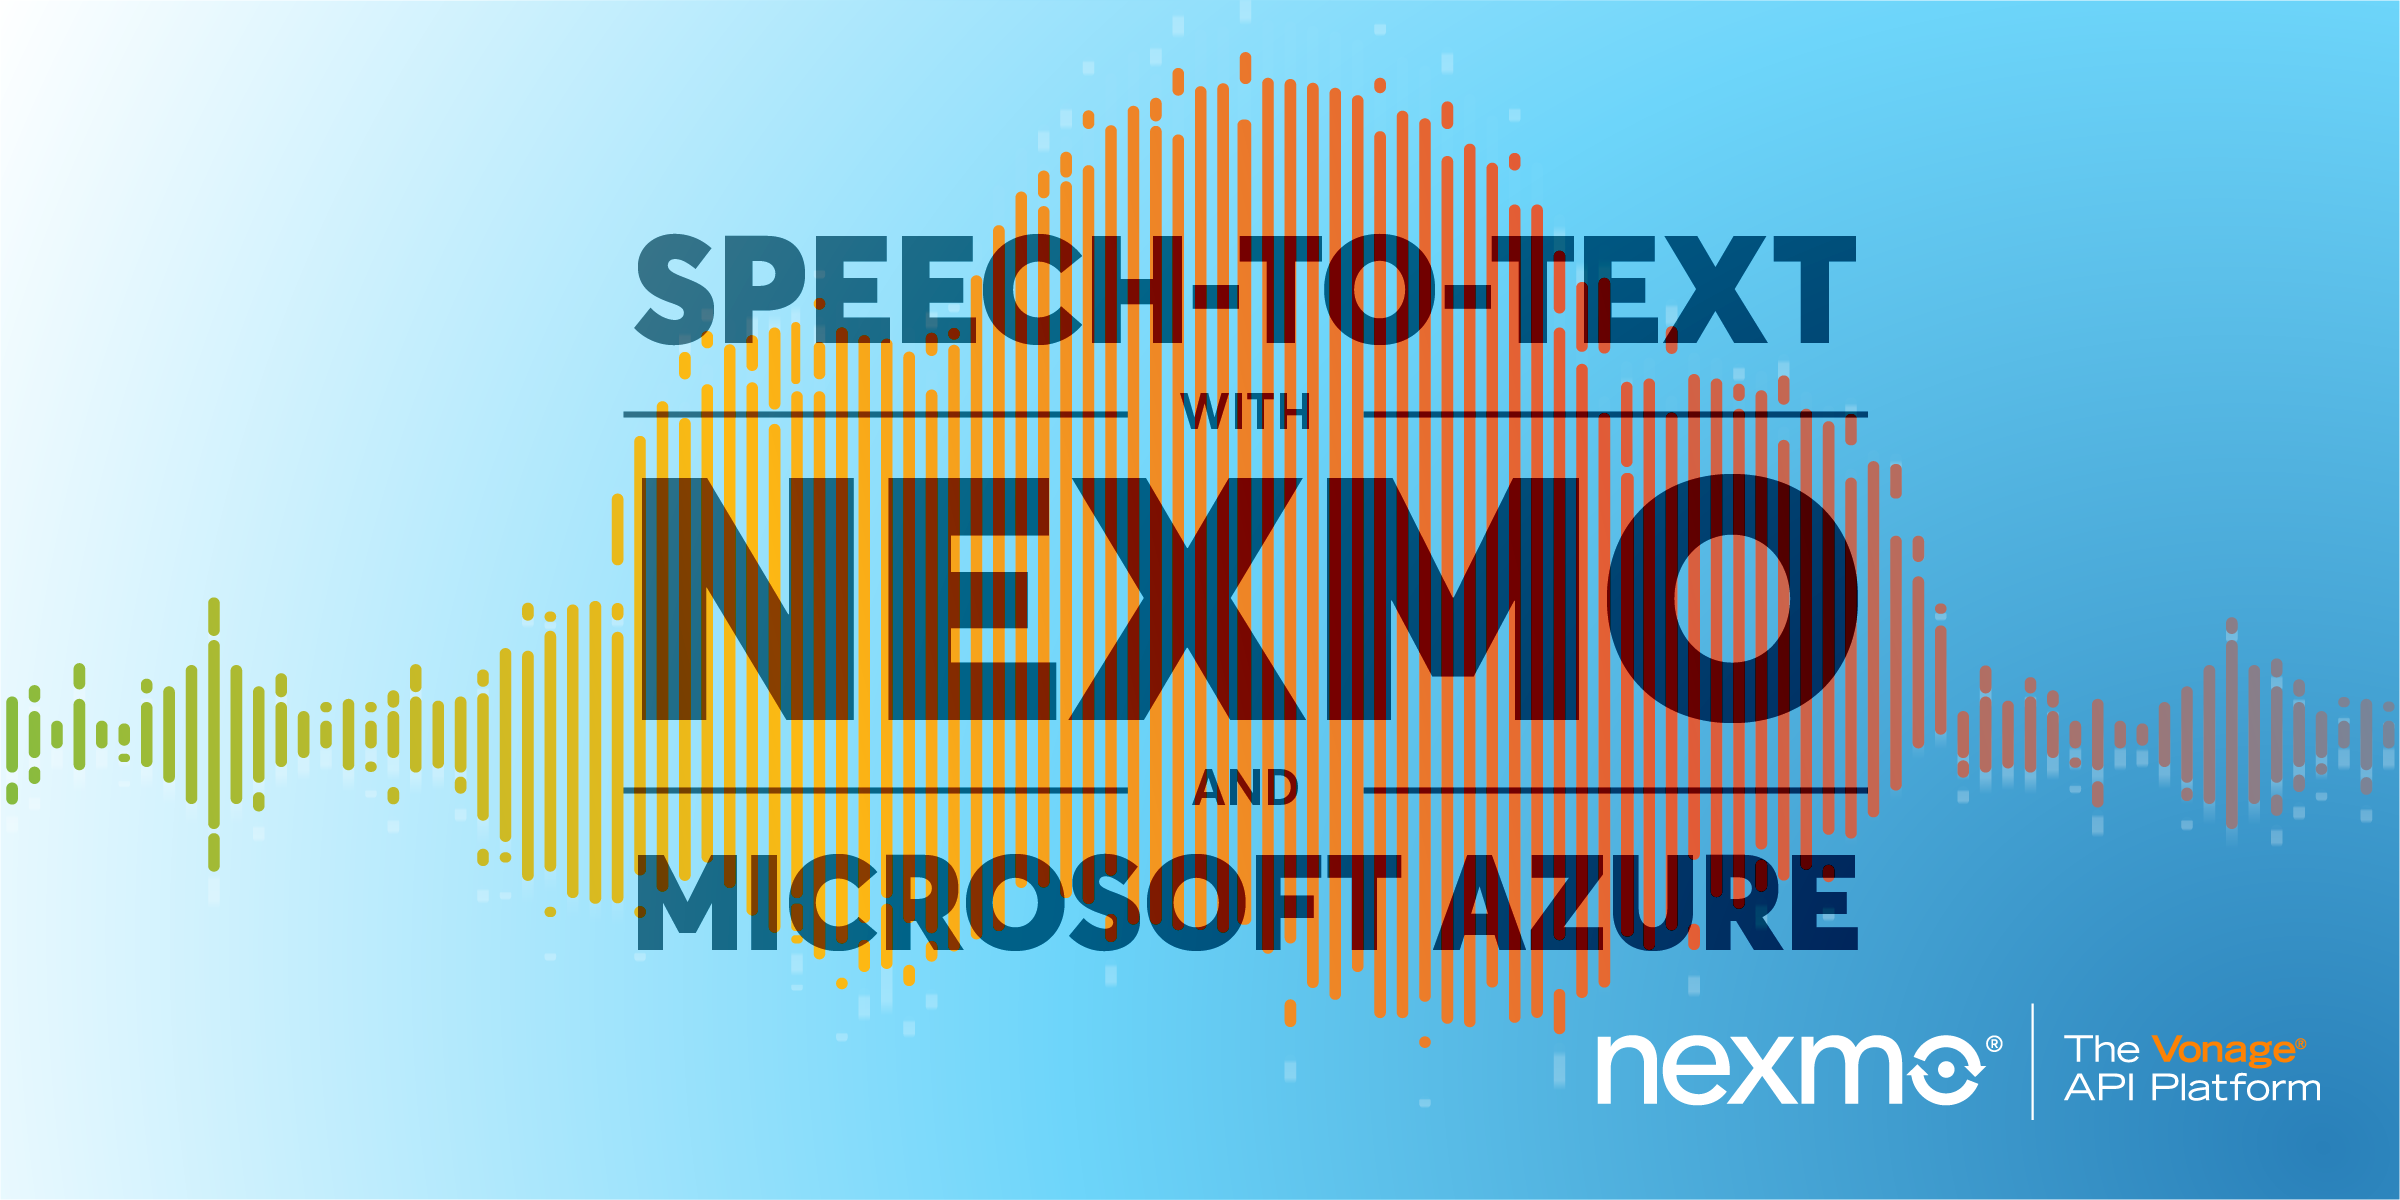 Speech-To-Text with Nexmo and Microsoft Azure